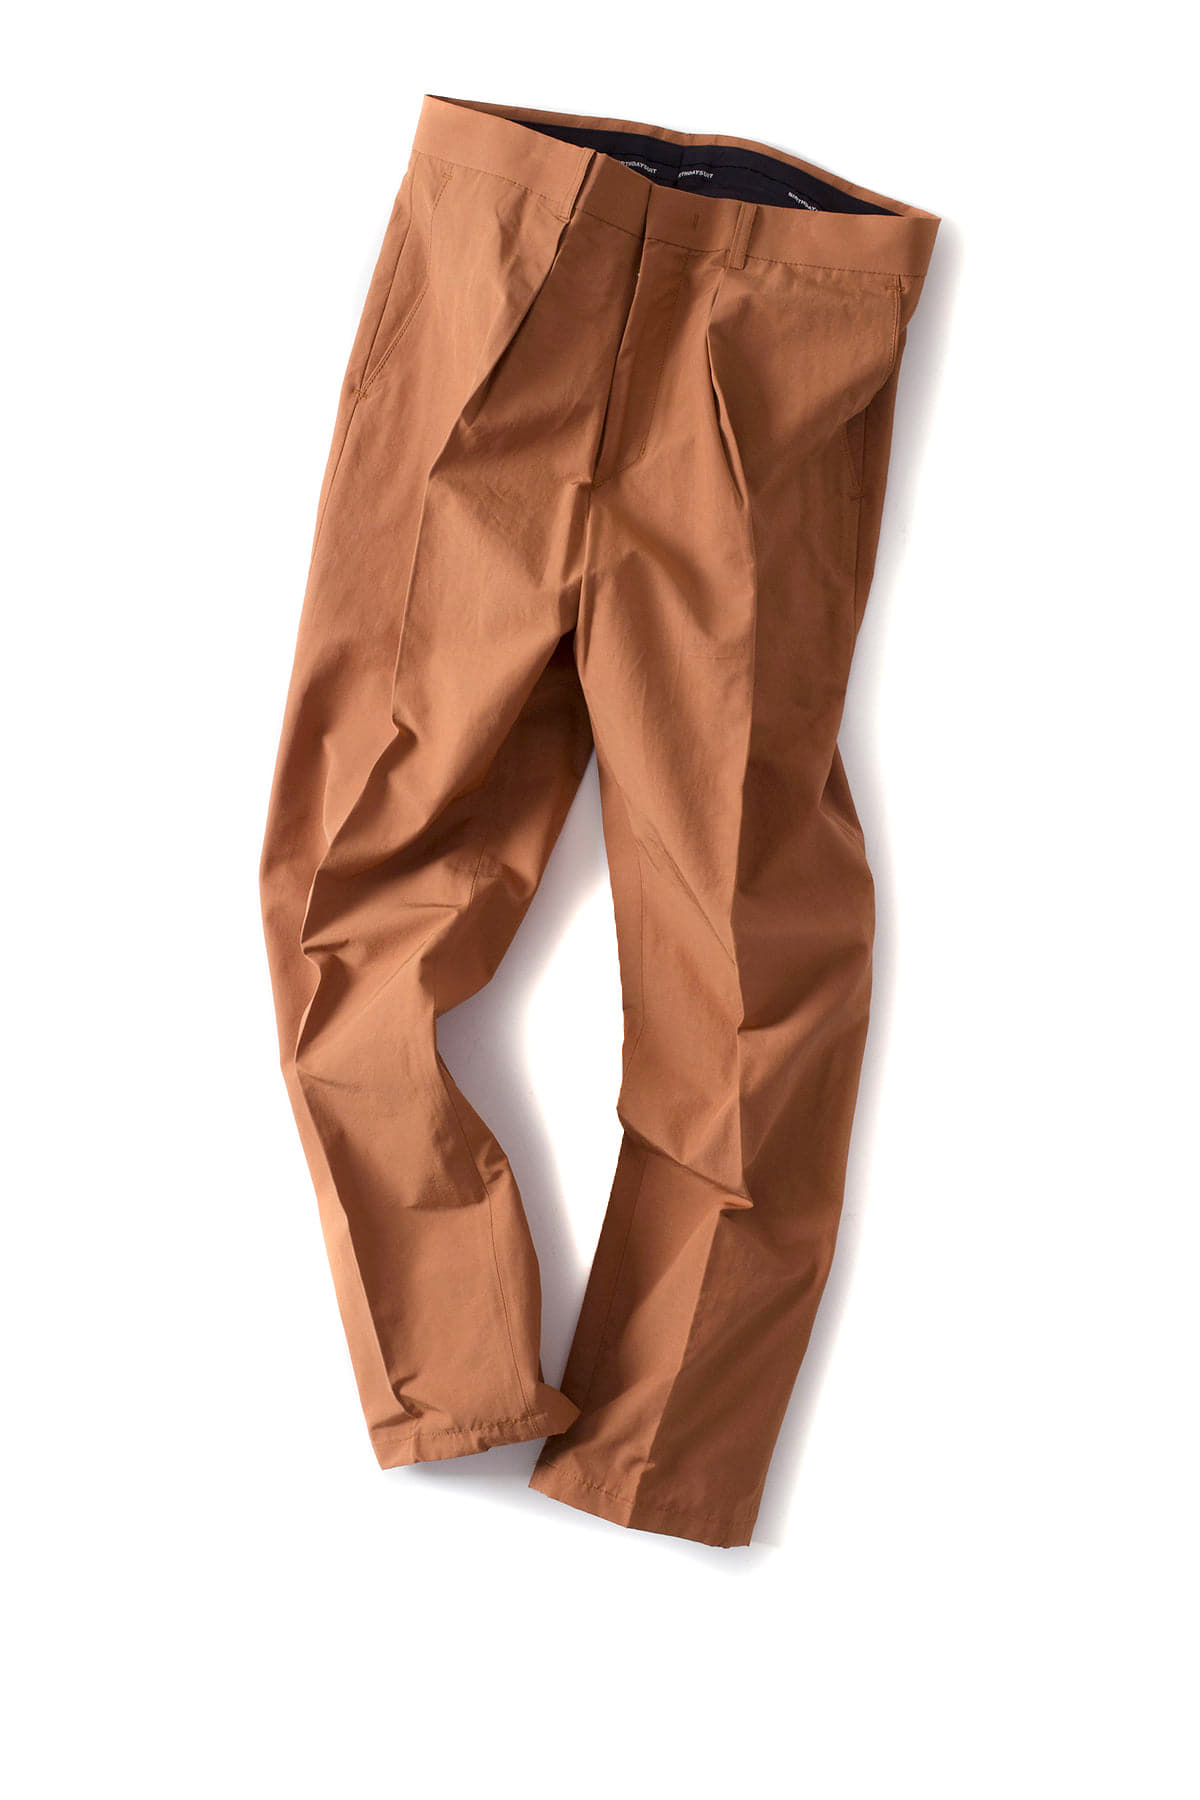 BIRTHDAYSUIT : Weekend Pants (Orange Brown)